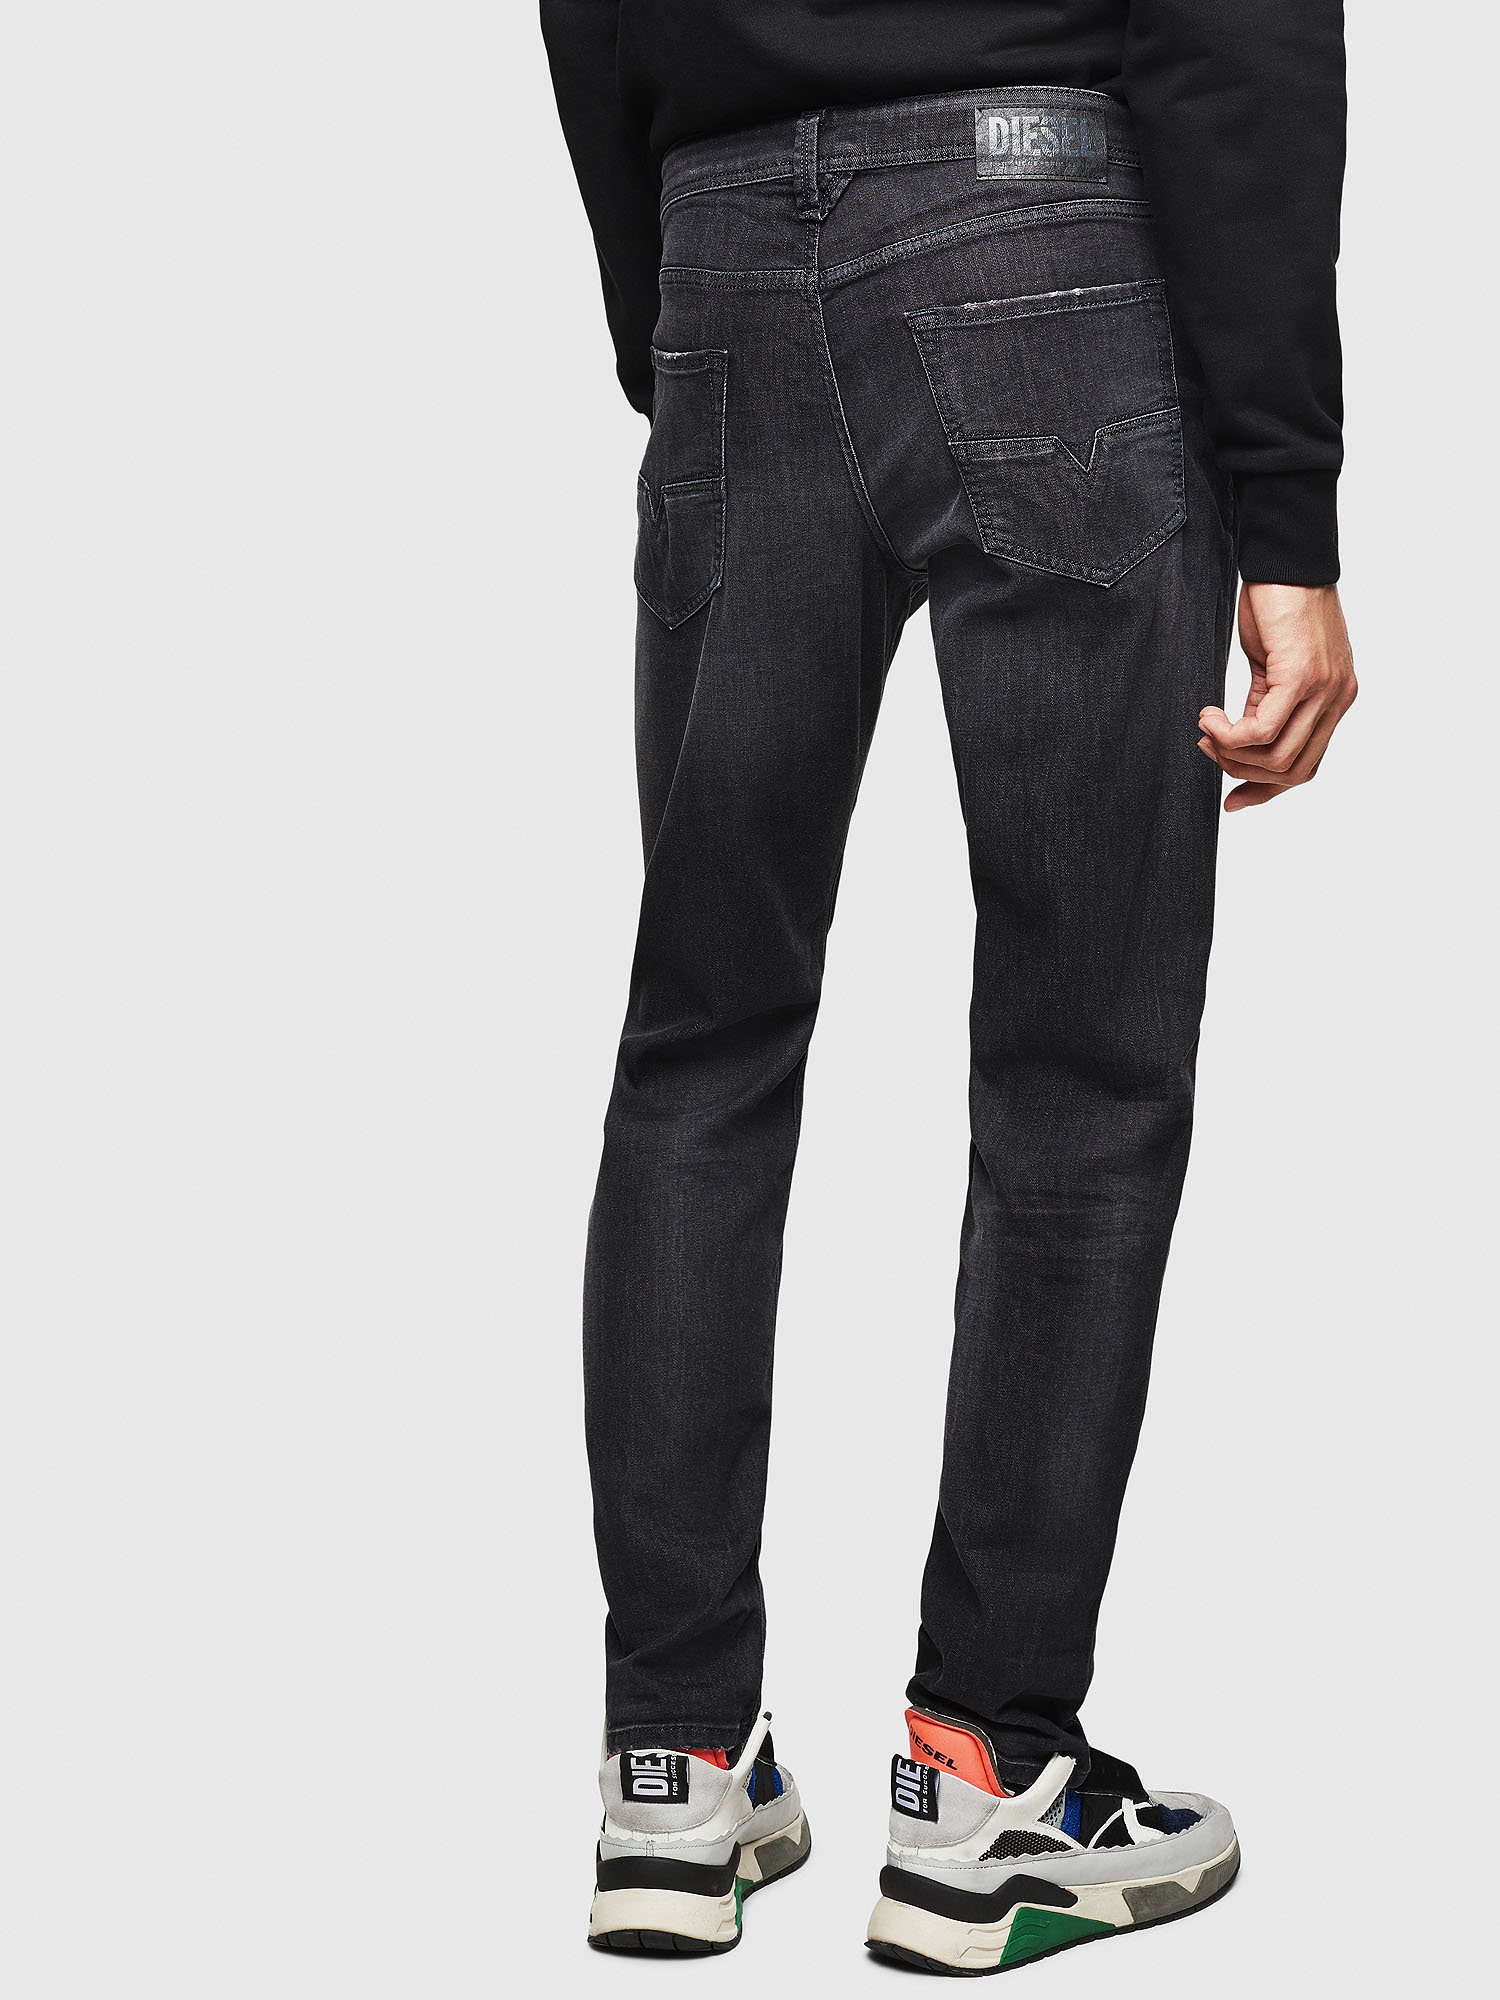 Diesel - Larkee-Beex 082AS,  - Jeans - Image 2